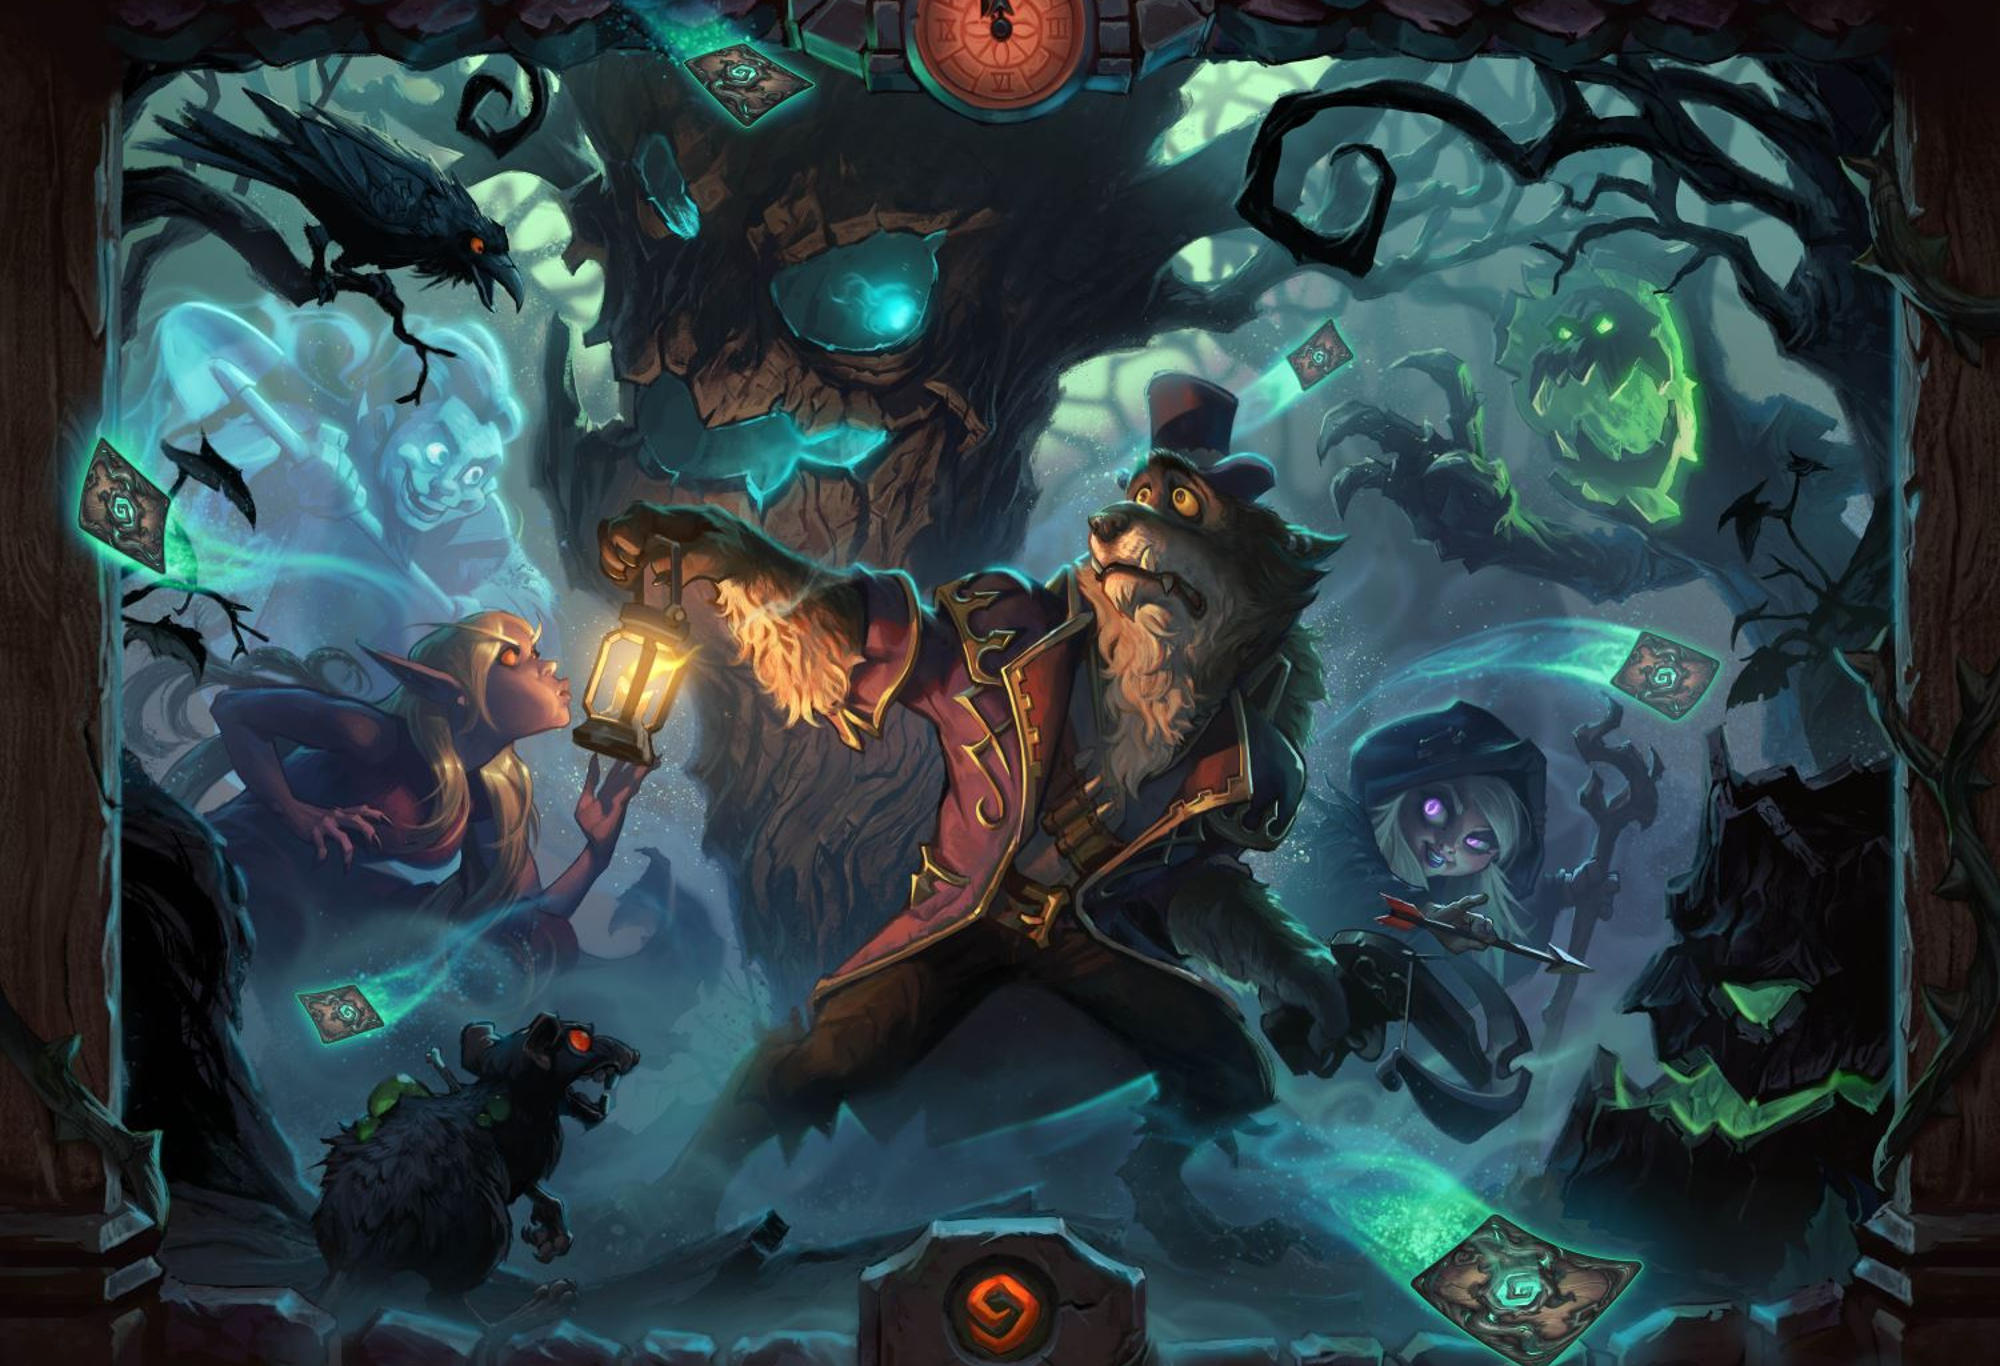 Art depicting the theme of the next Hearthstone expansion, The Witchwood.